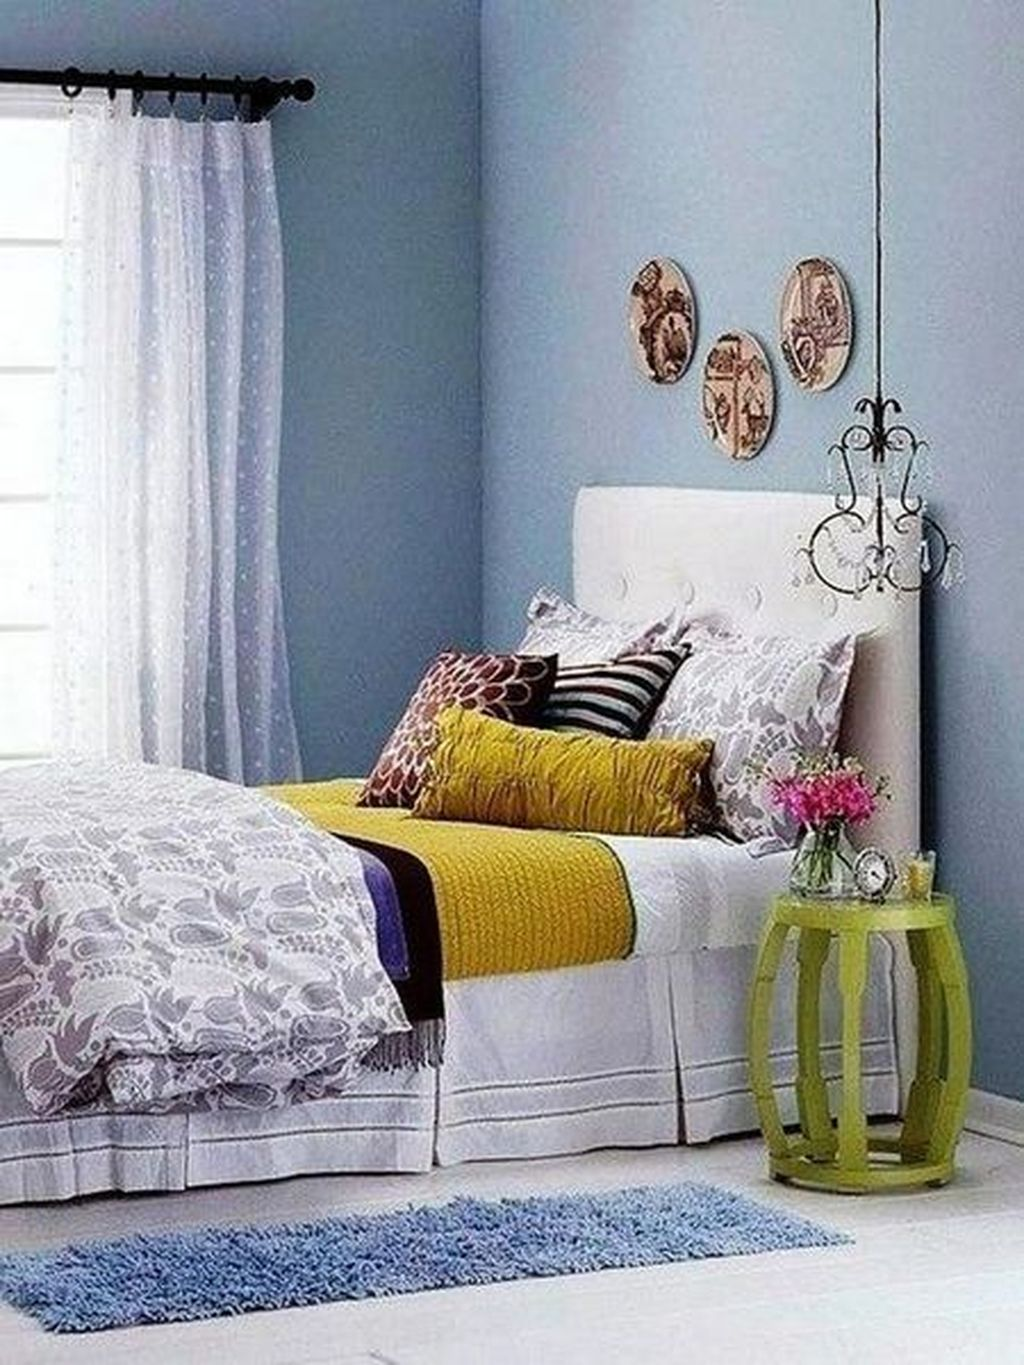 Beautiful Small Master Bedroom Design Ideas On A Budget 10